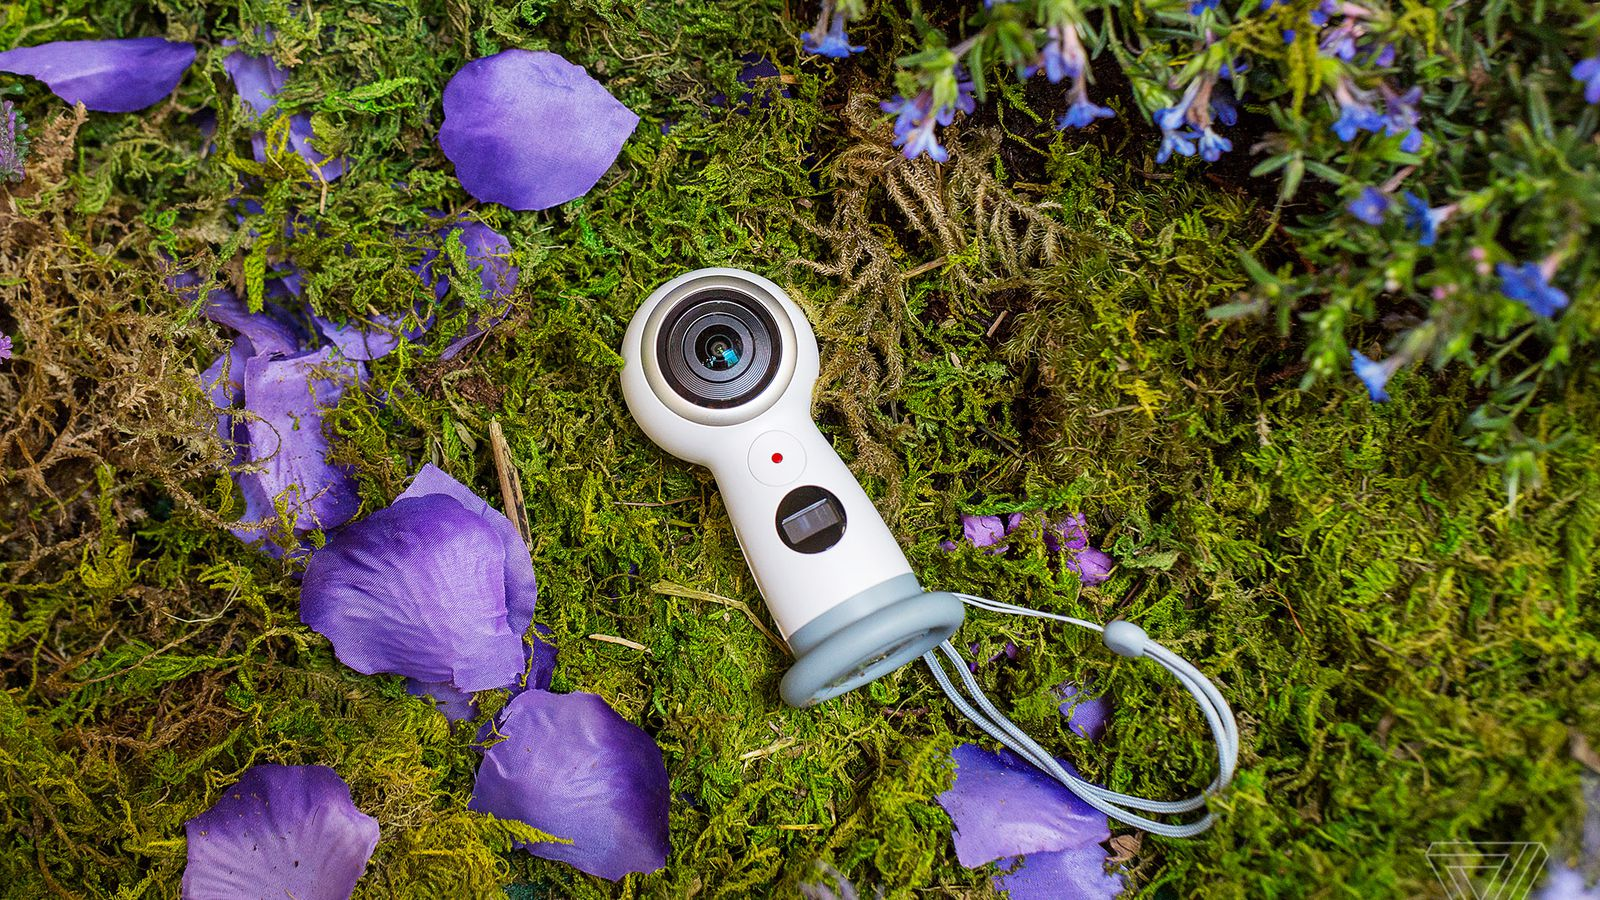 Samsung's new Gear 360 camera goes on sale May 25th and ...